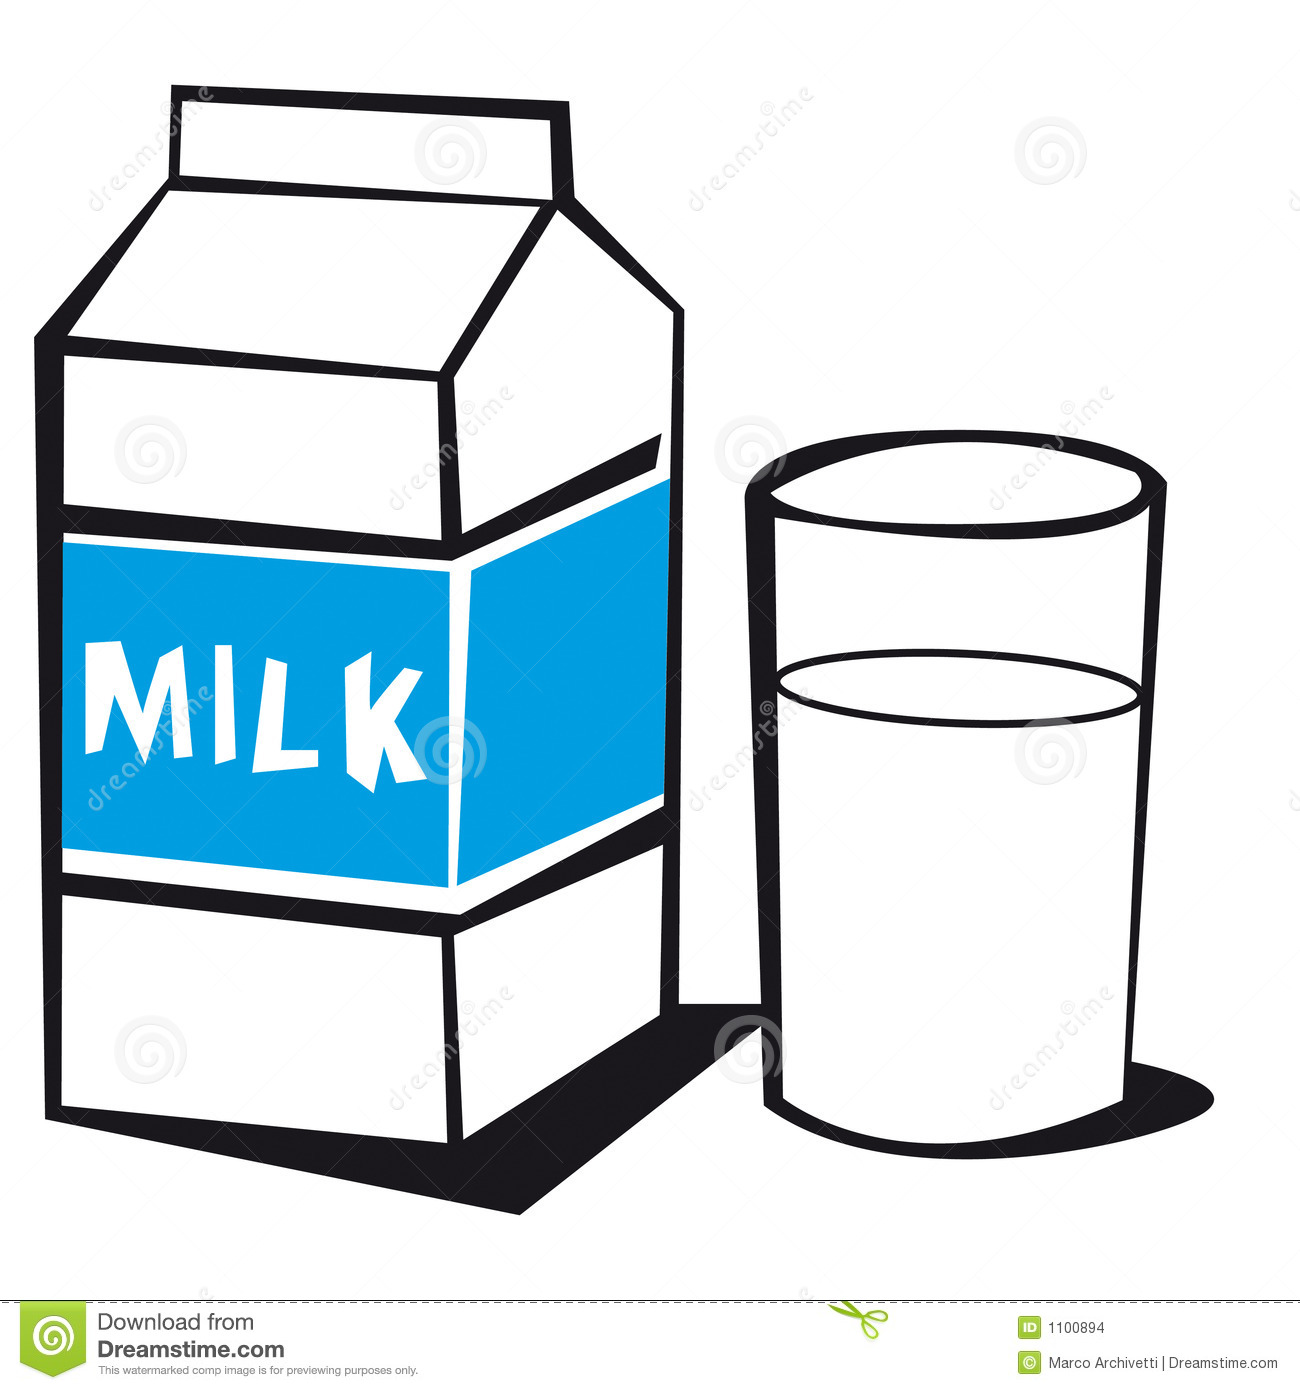 image transparent stock Black and white free. Carton clipart milk water.